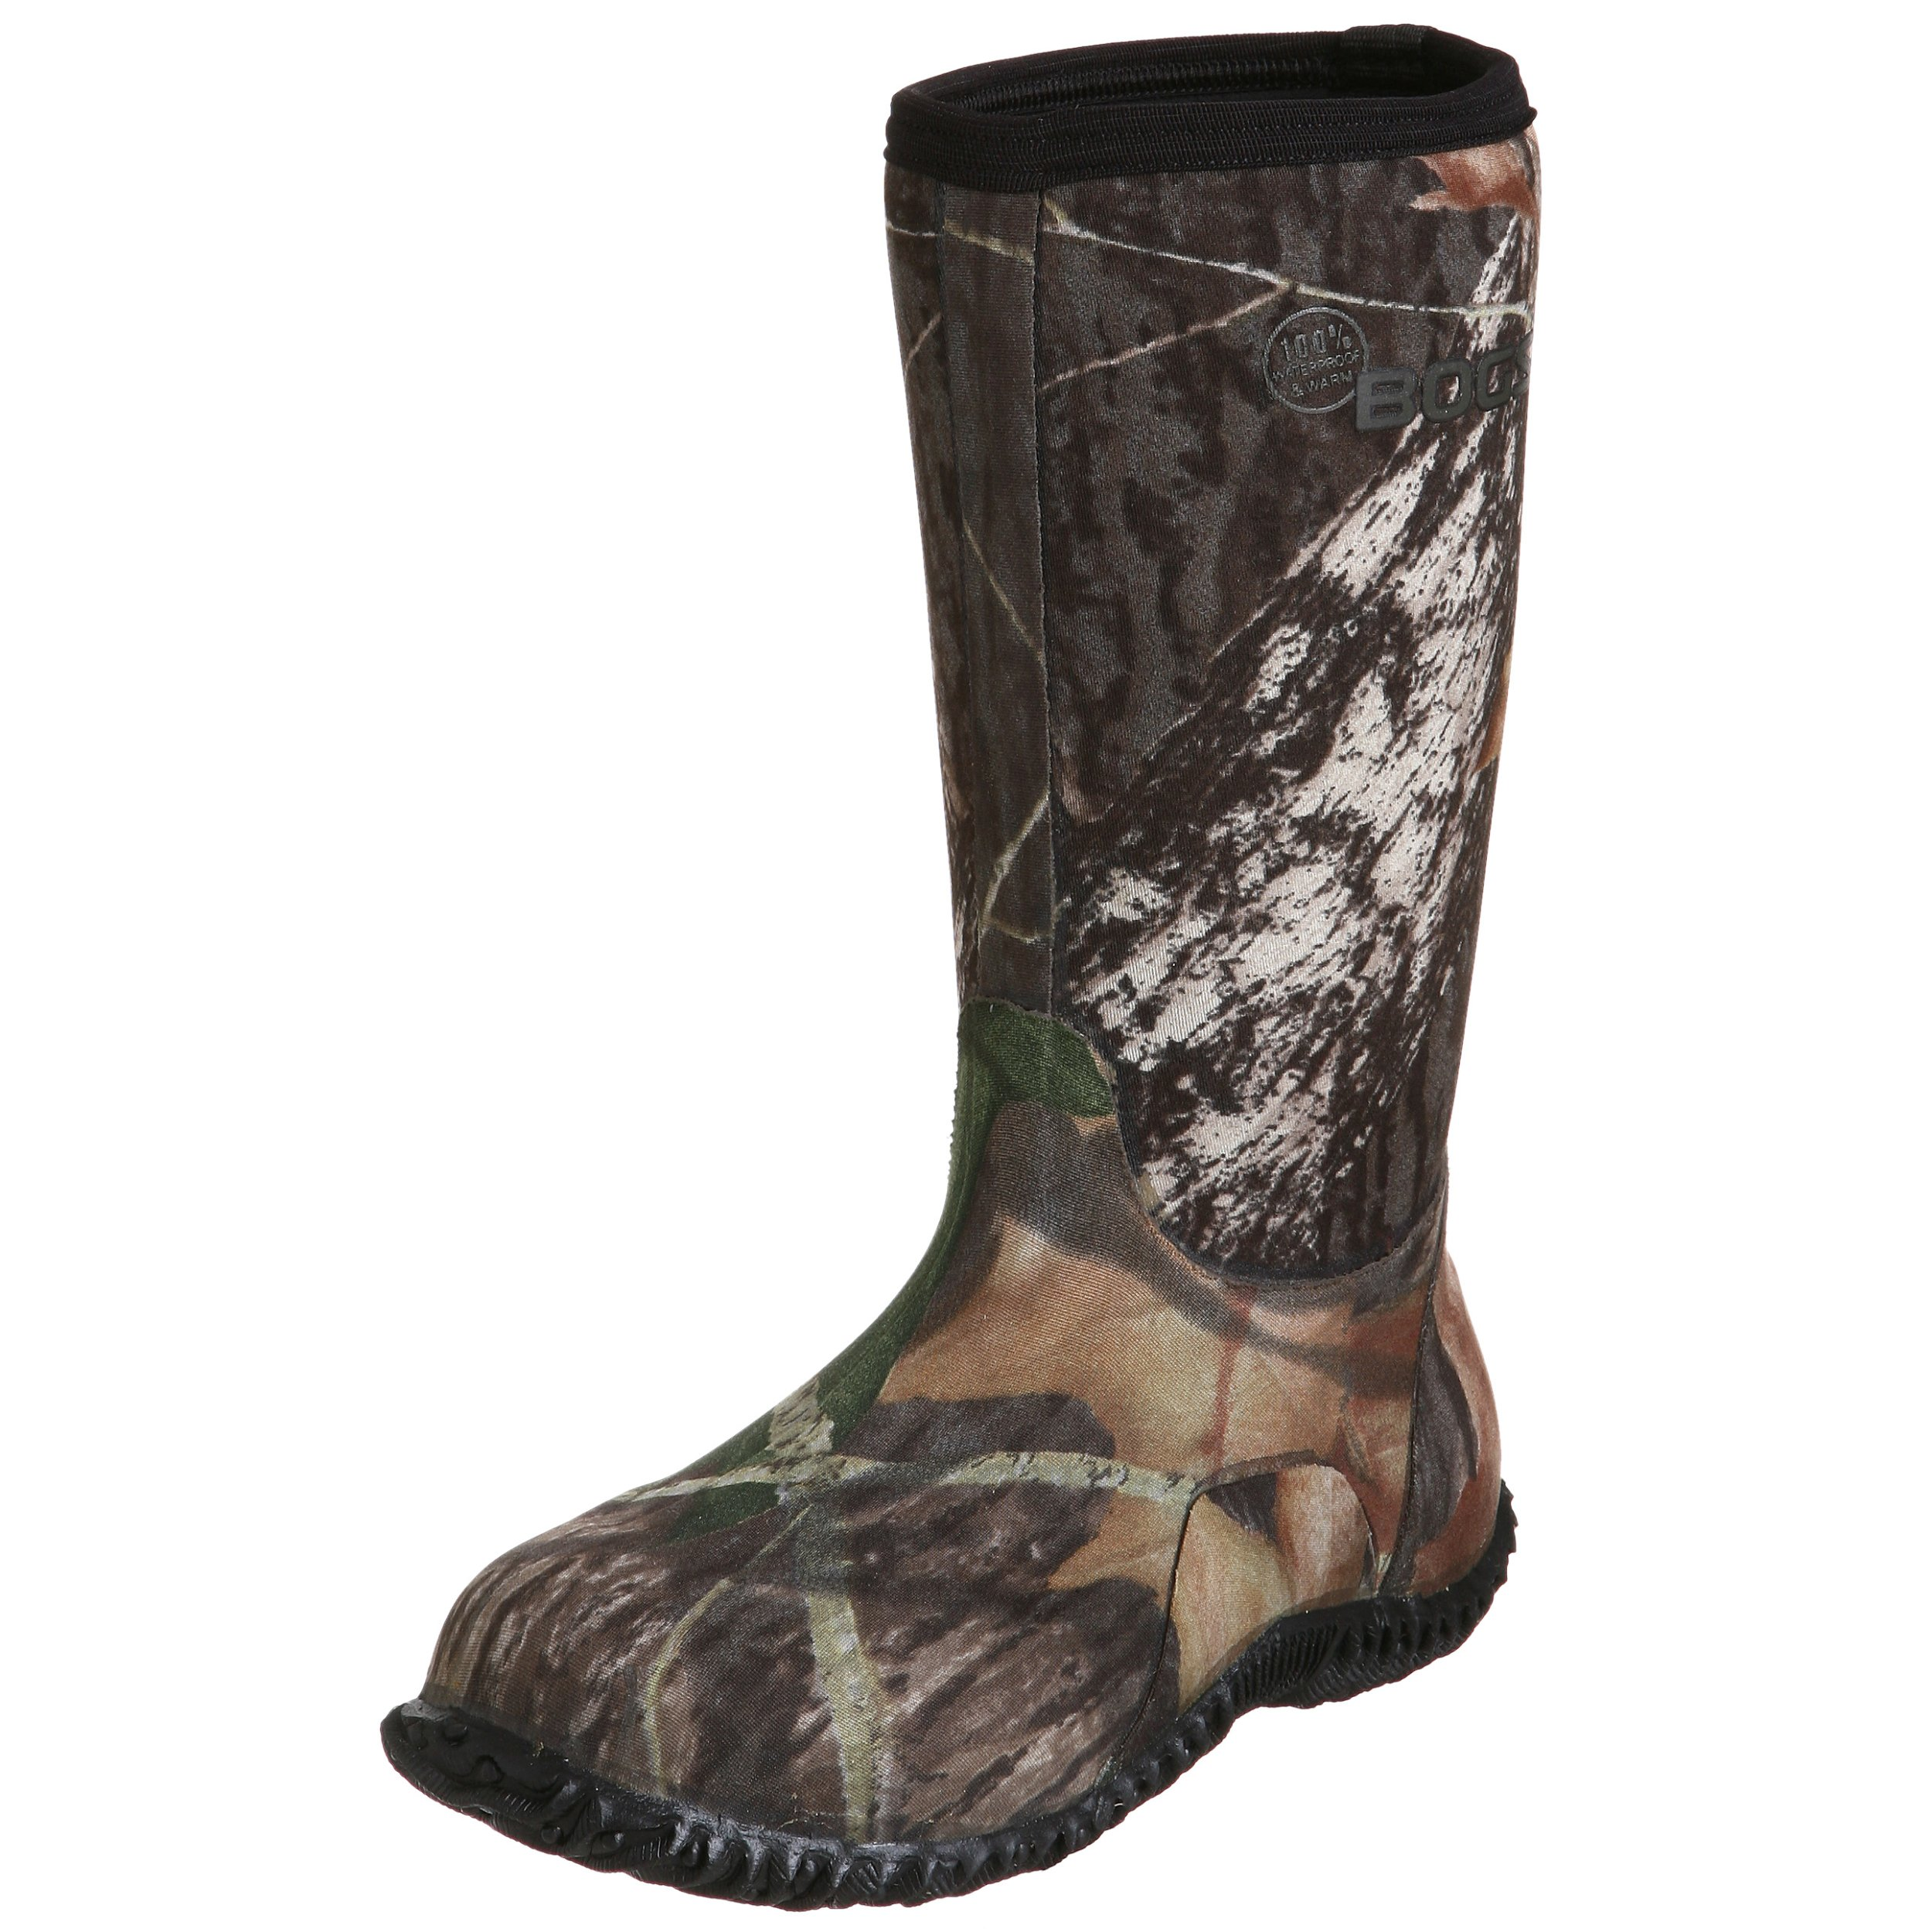 BOGS Kids Classic Insulated Boots - Mossy Oak - 5 Kid by Bogs